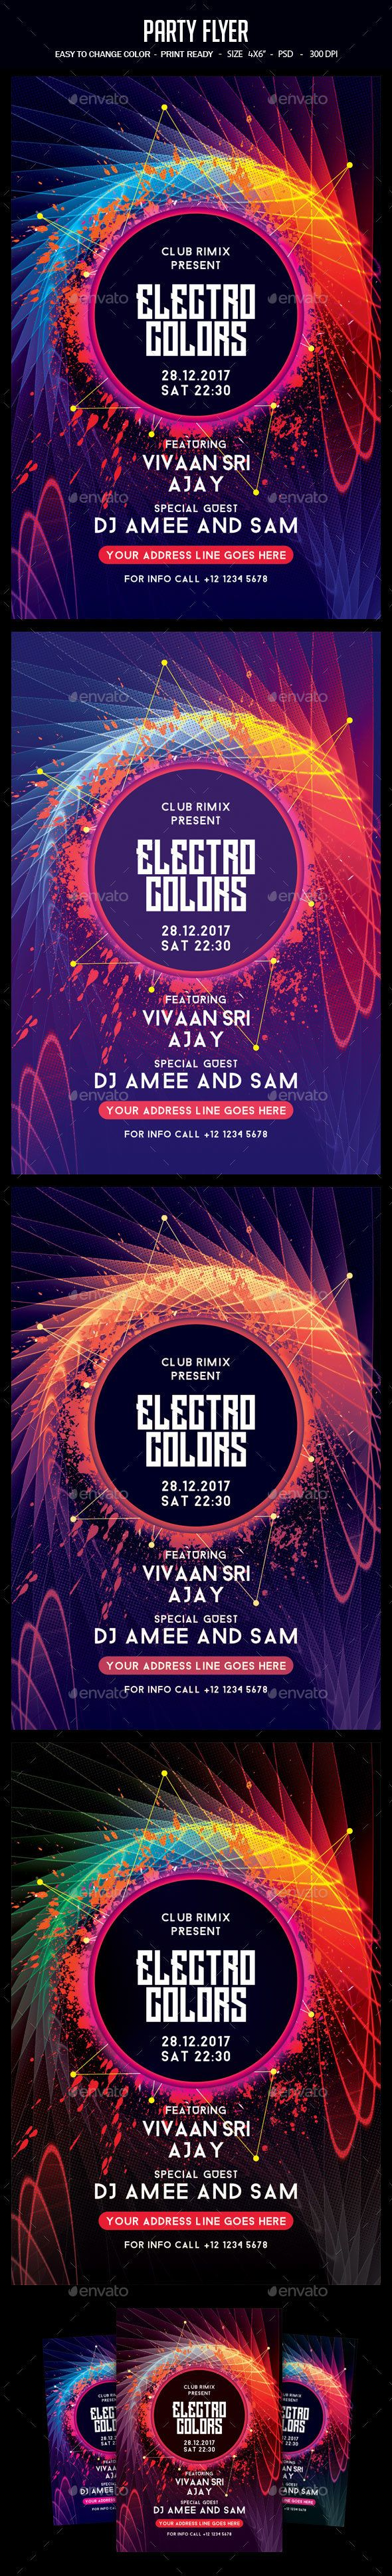 Party Flyer Template PSD